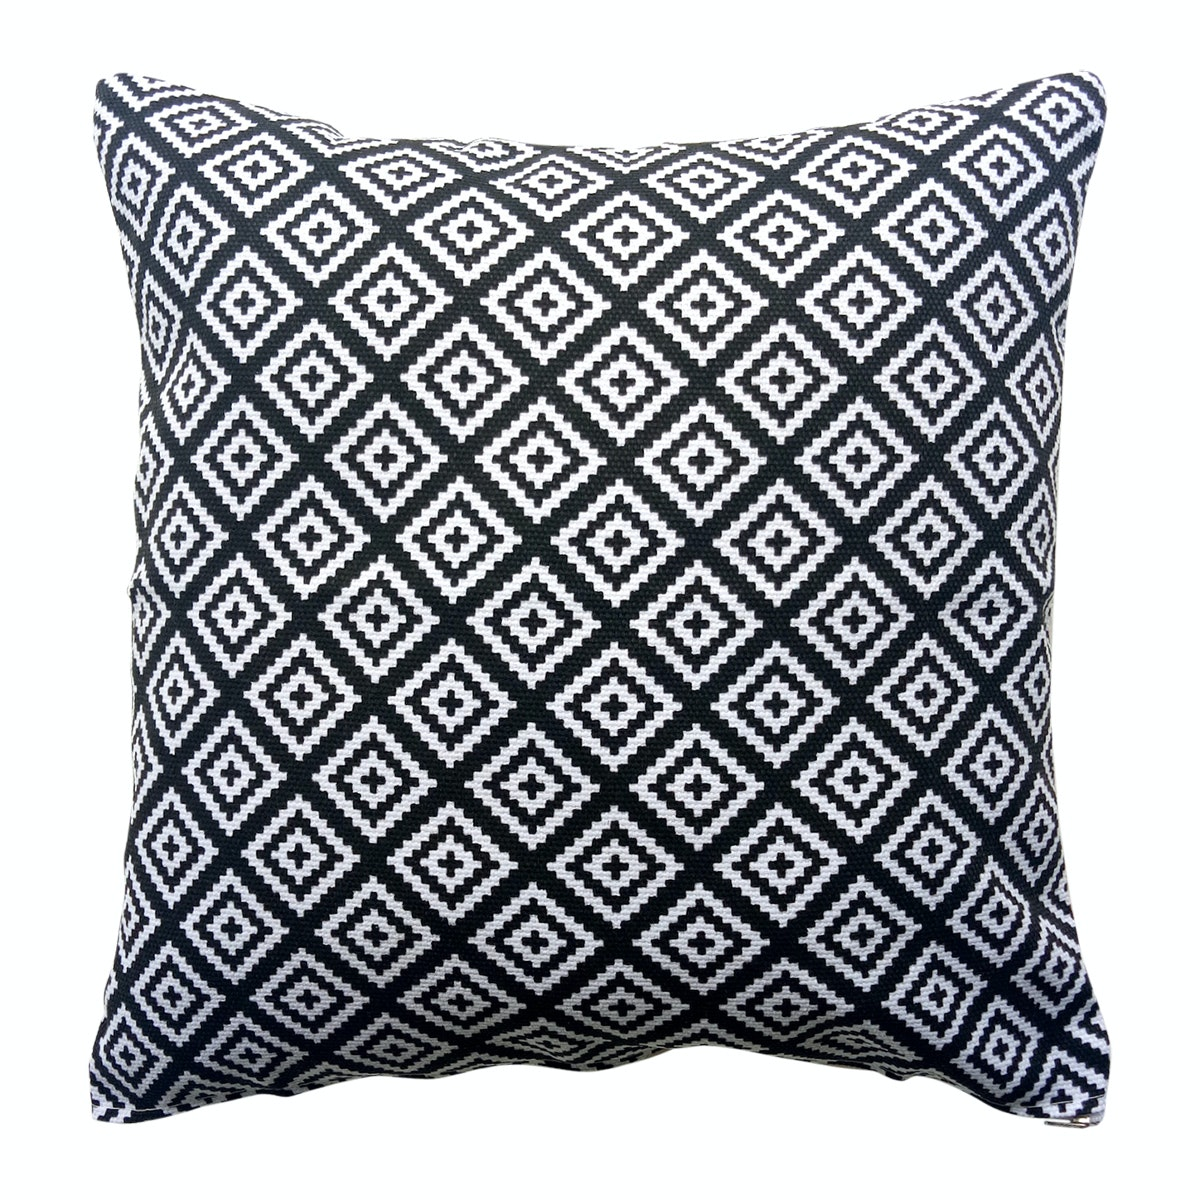 Stiletto Living Cushion Cover / Sarung Bantal - Black Mexican